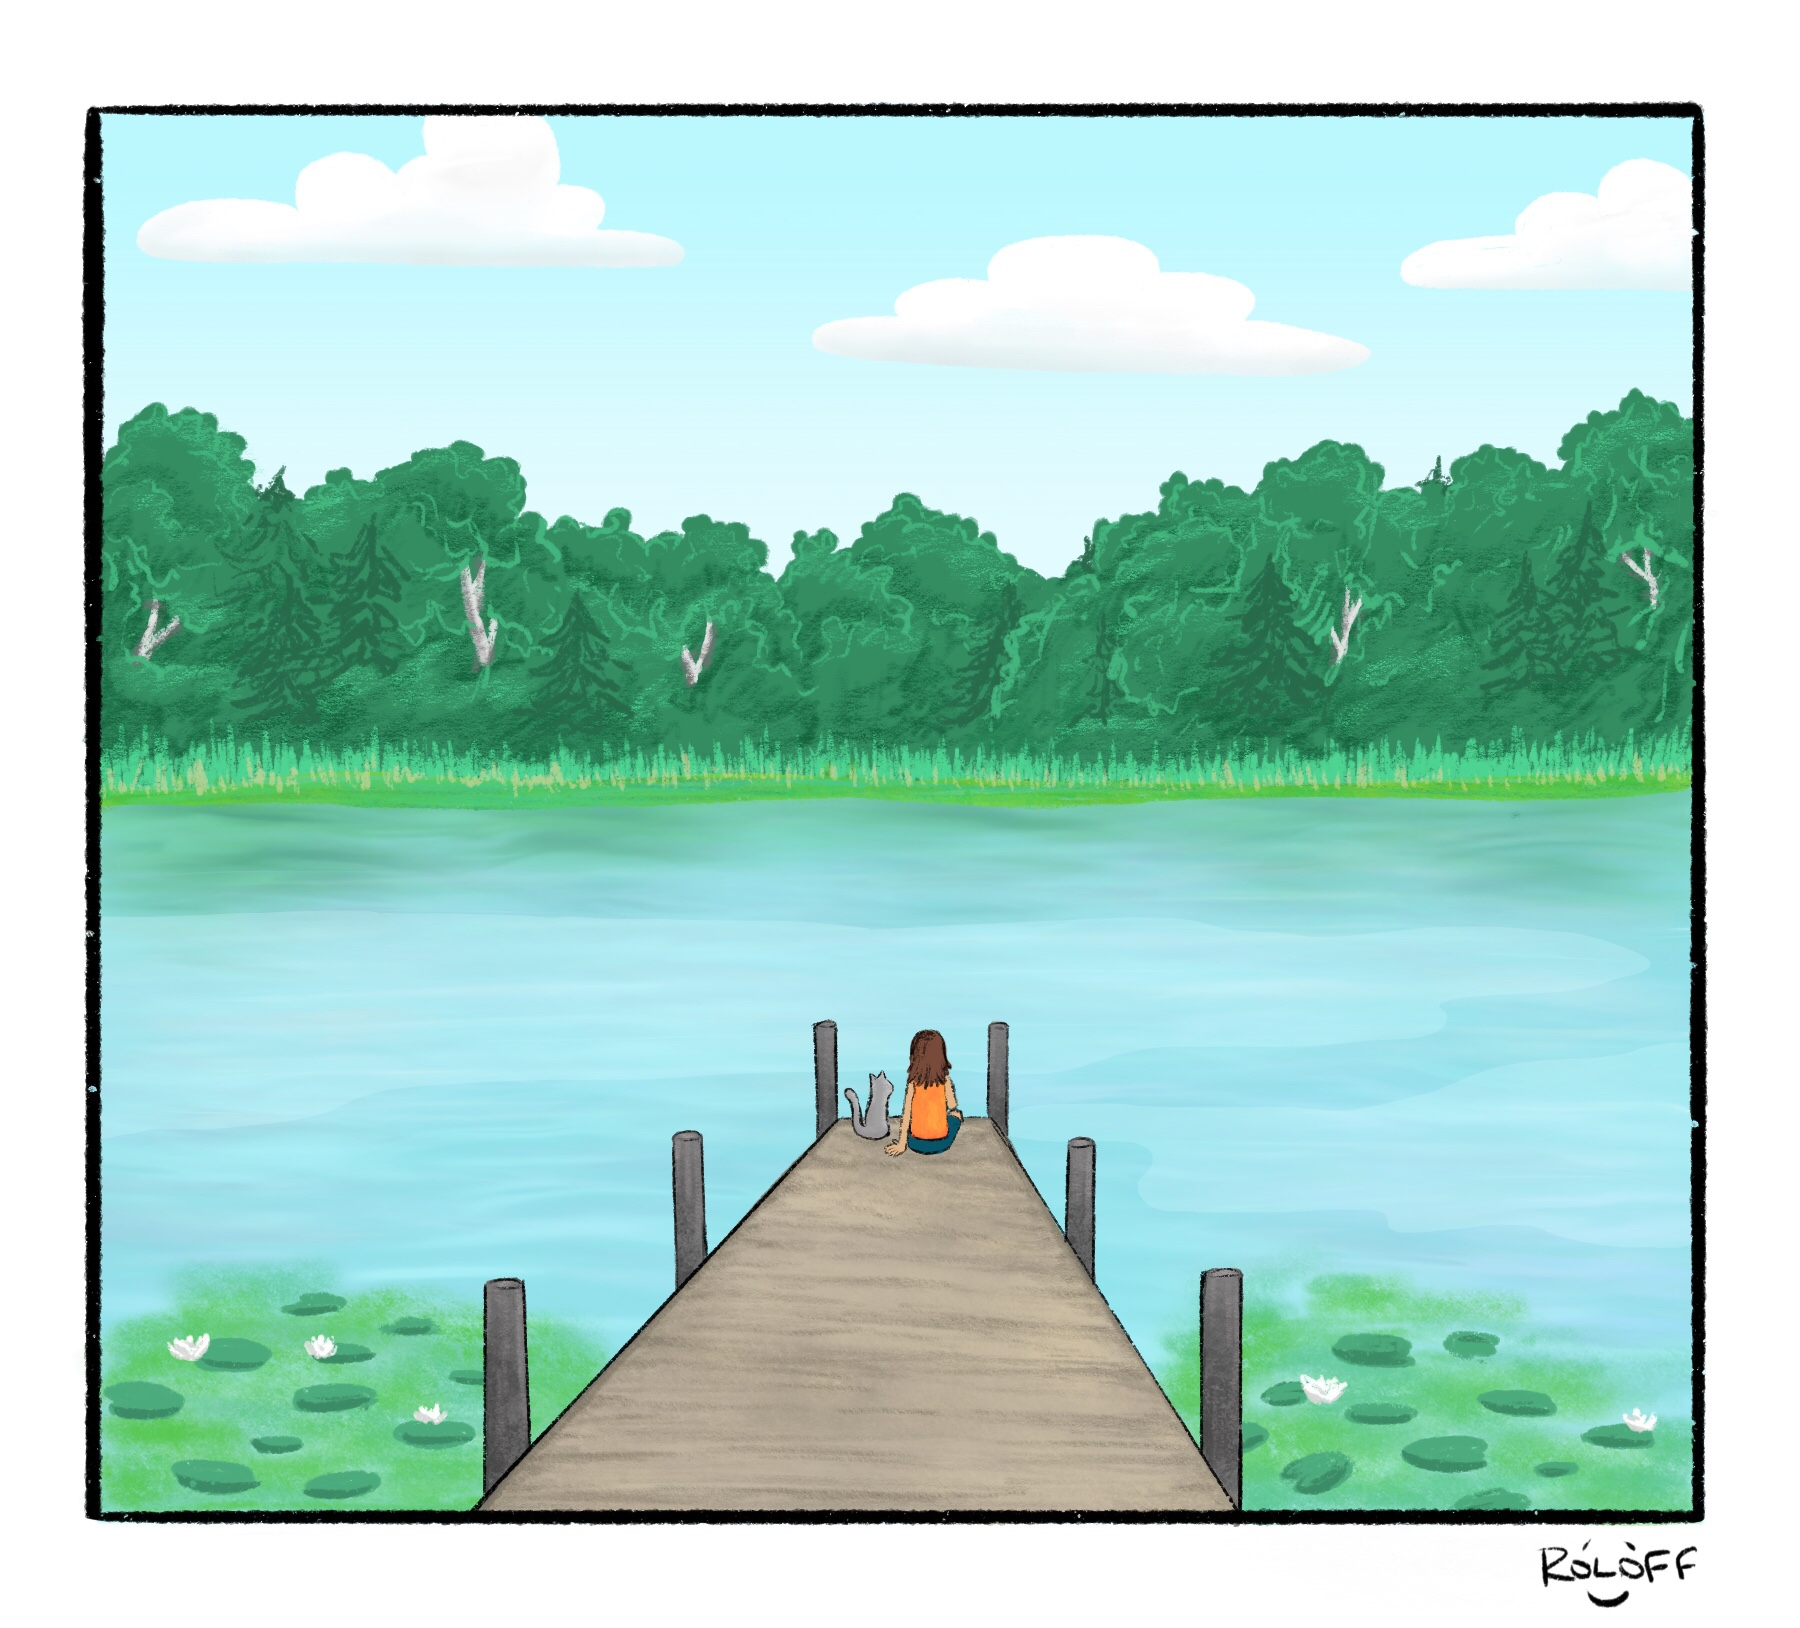 Lucy & Maverick - A lazy summer day has the unexpected in store for Lucy and her adventure cat Maverick.